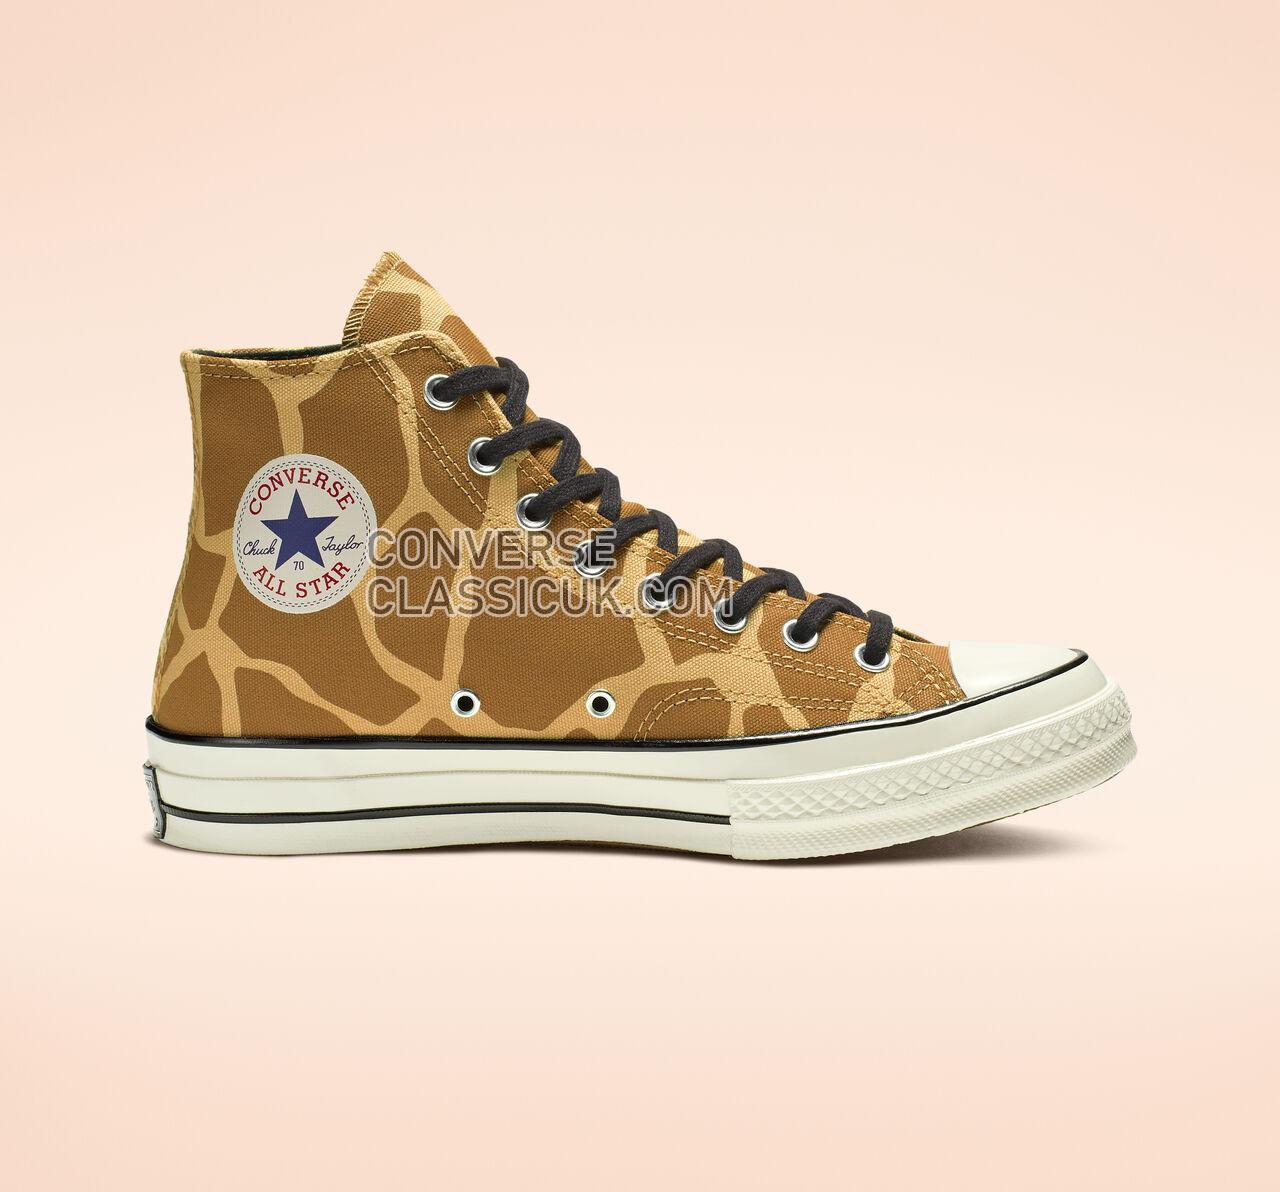 Converse Chuck 70 Archive Print High Top Mens Womens Unisex 163410C Flax/Brown/Egret Shoes